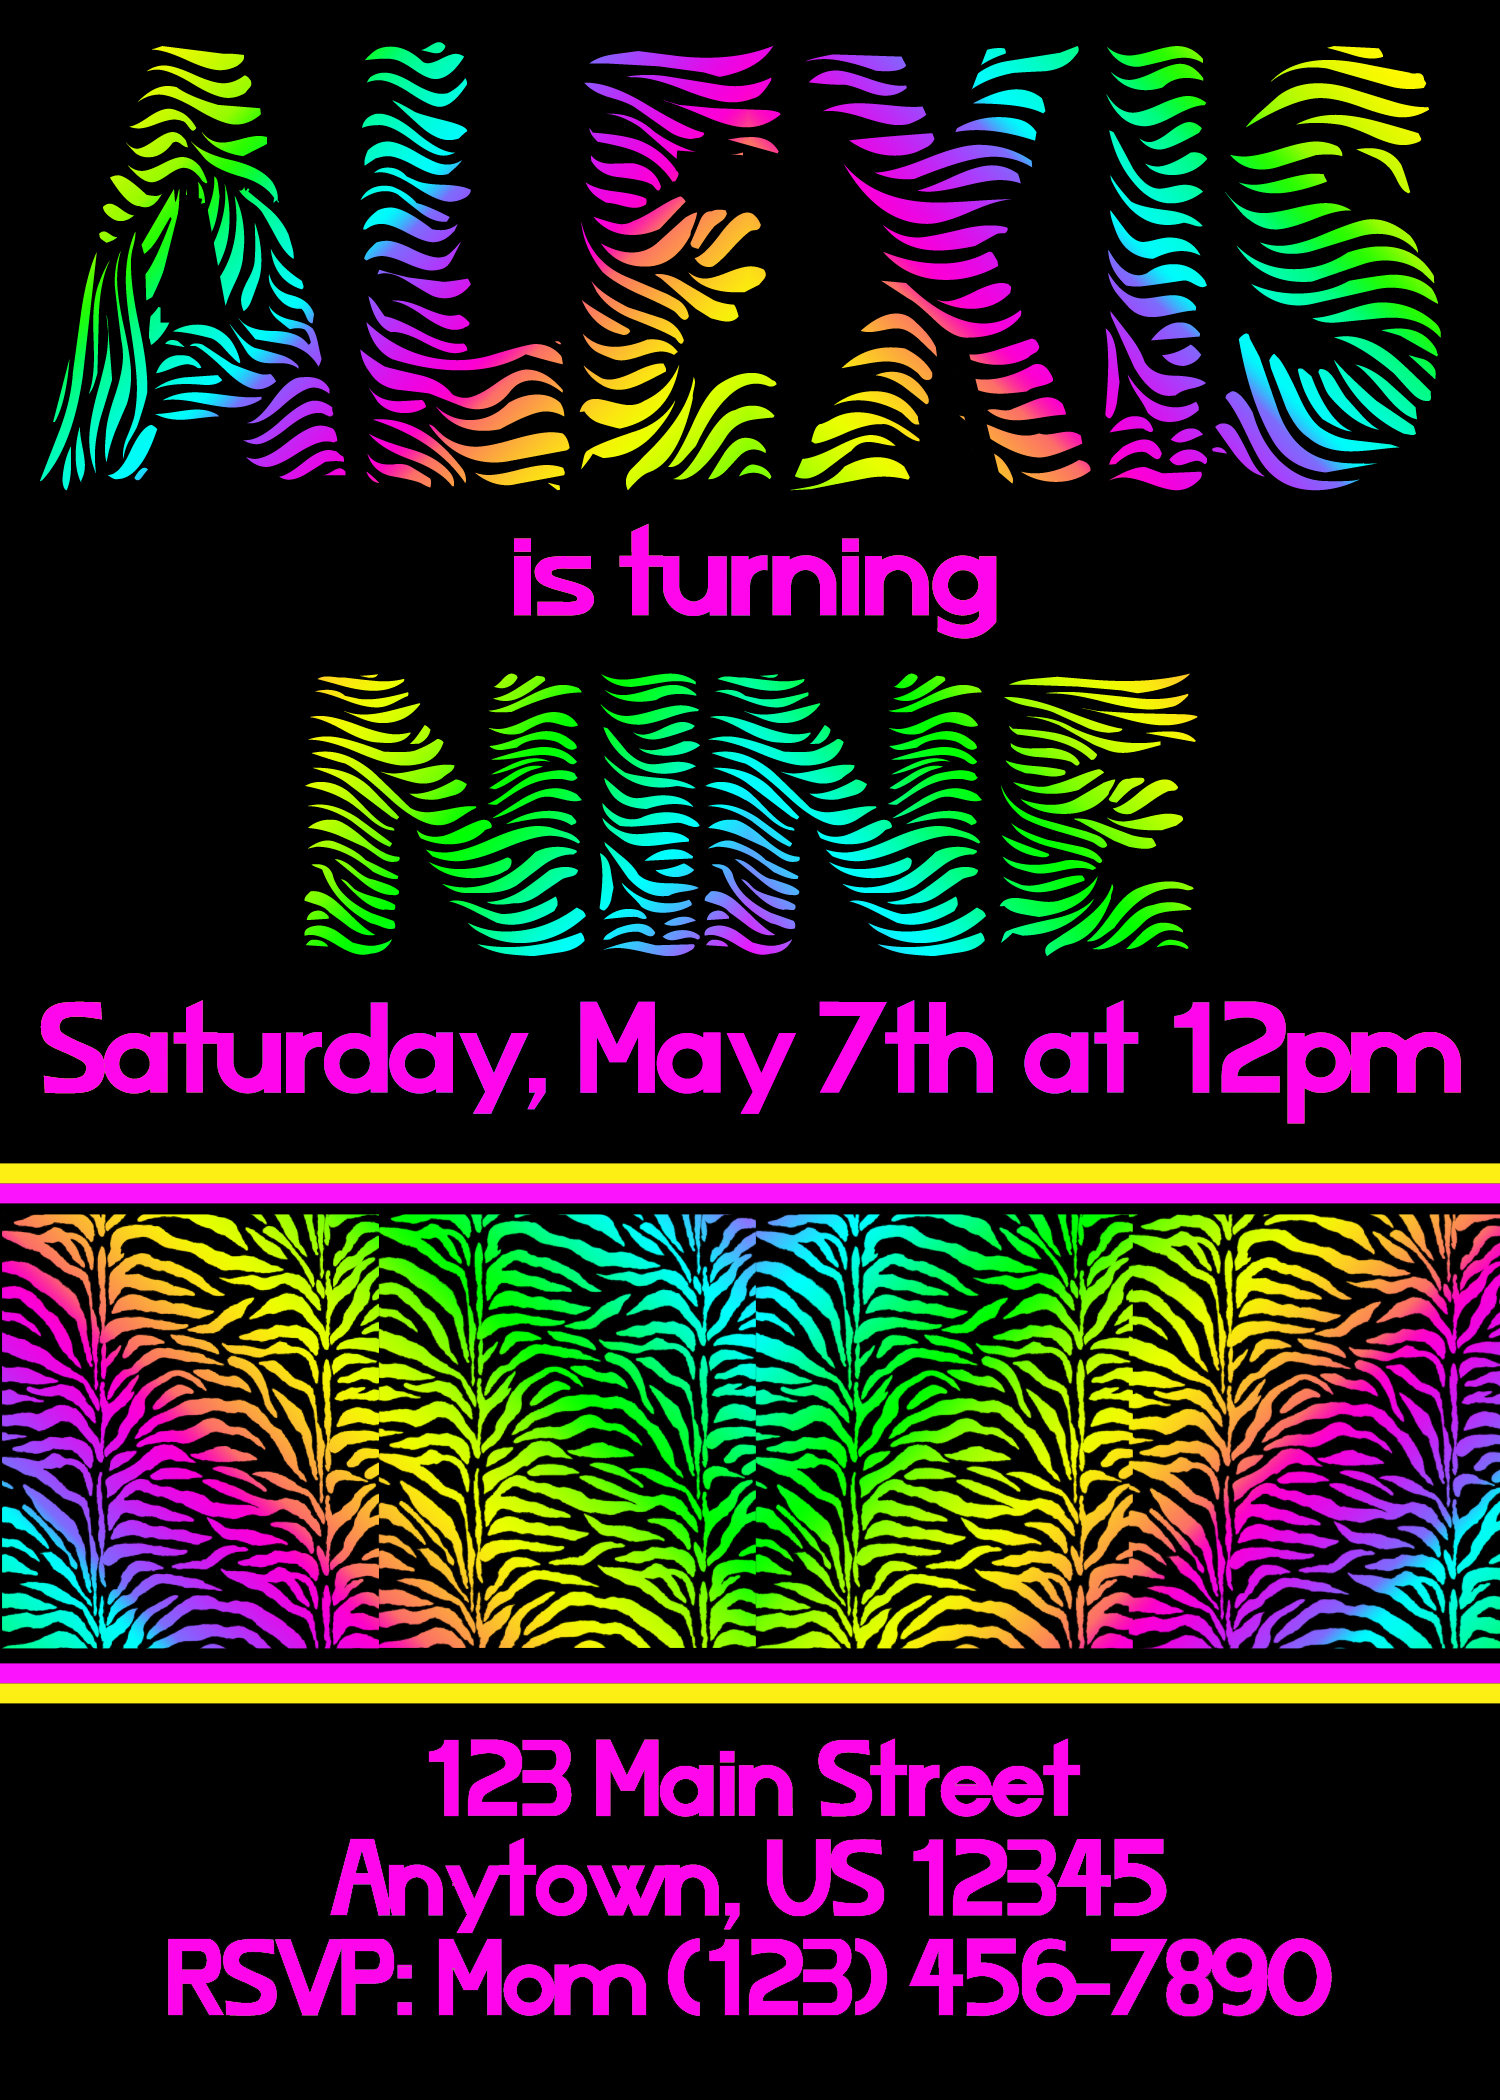 Neon Zebra Party Invitations | Two Blue Pillars